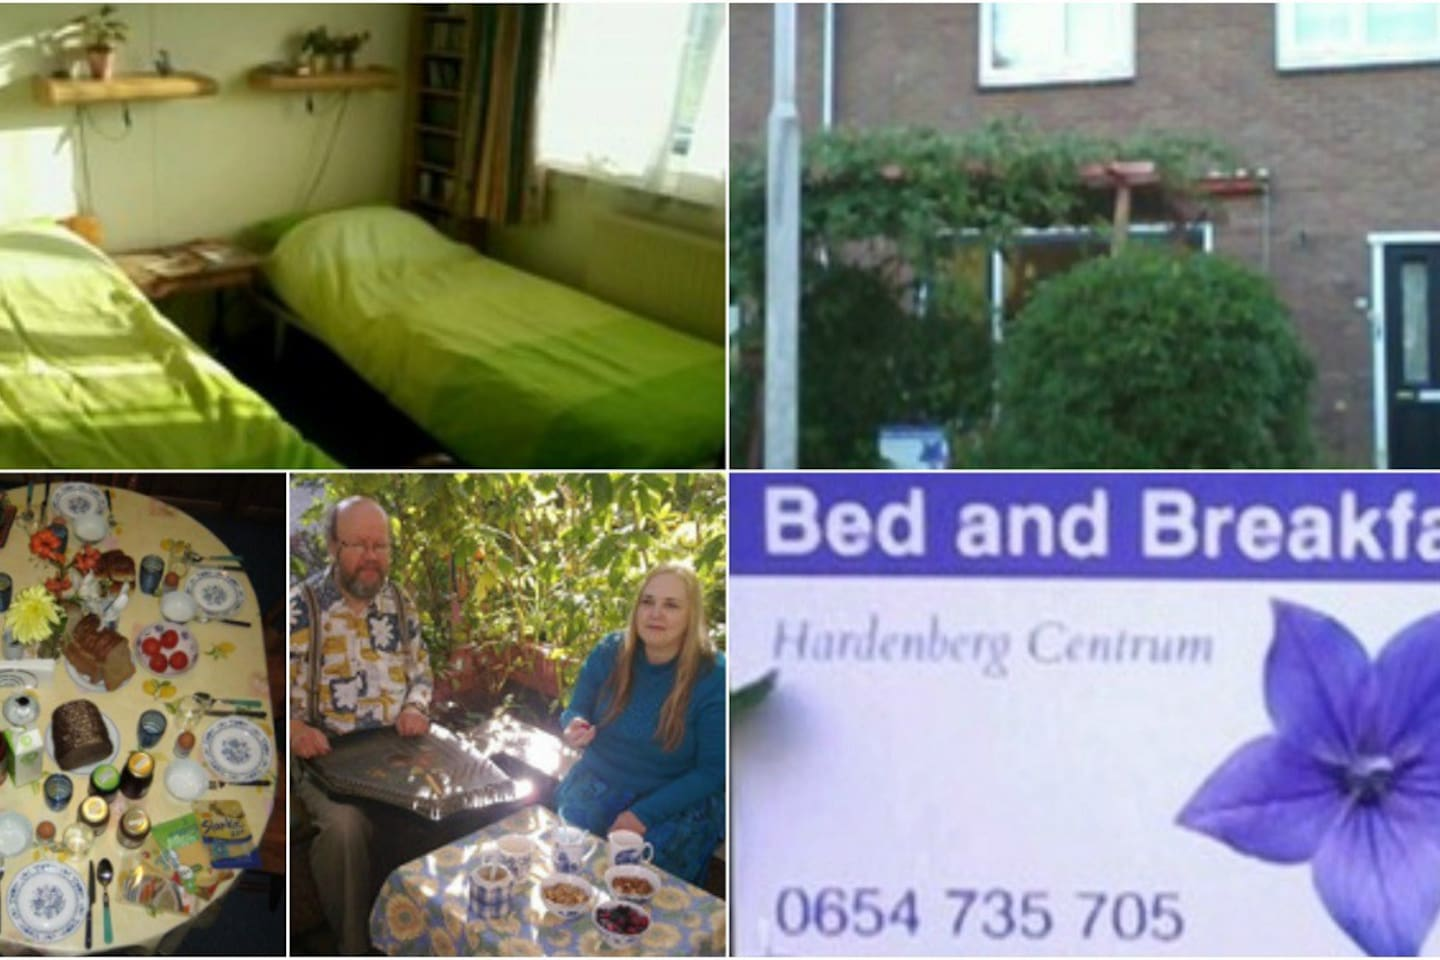 Top 20 bed en breakfasts hardenberg: herbergen en b&bs   airbnb ...